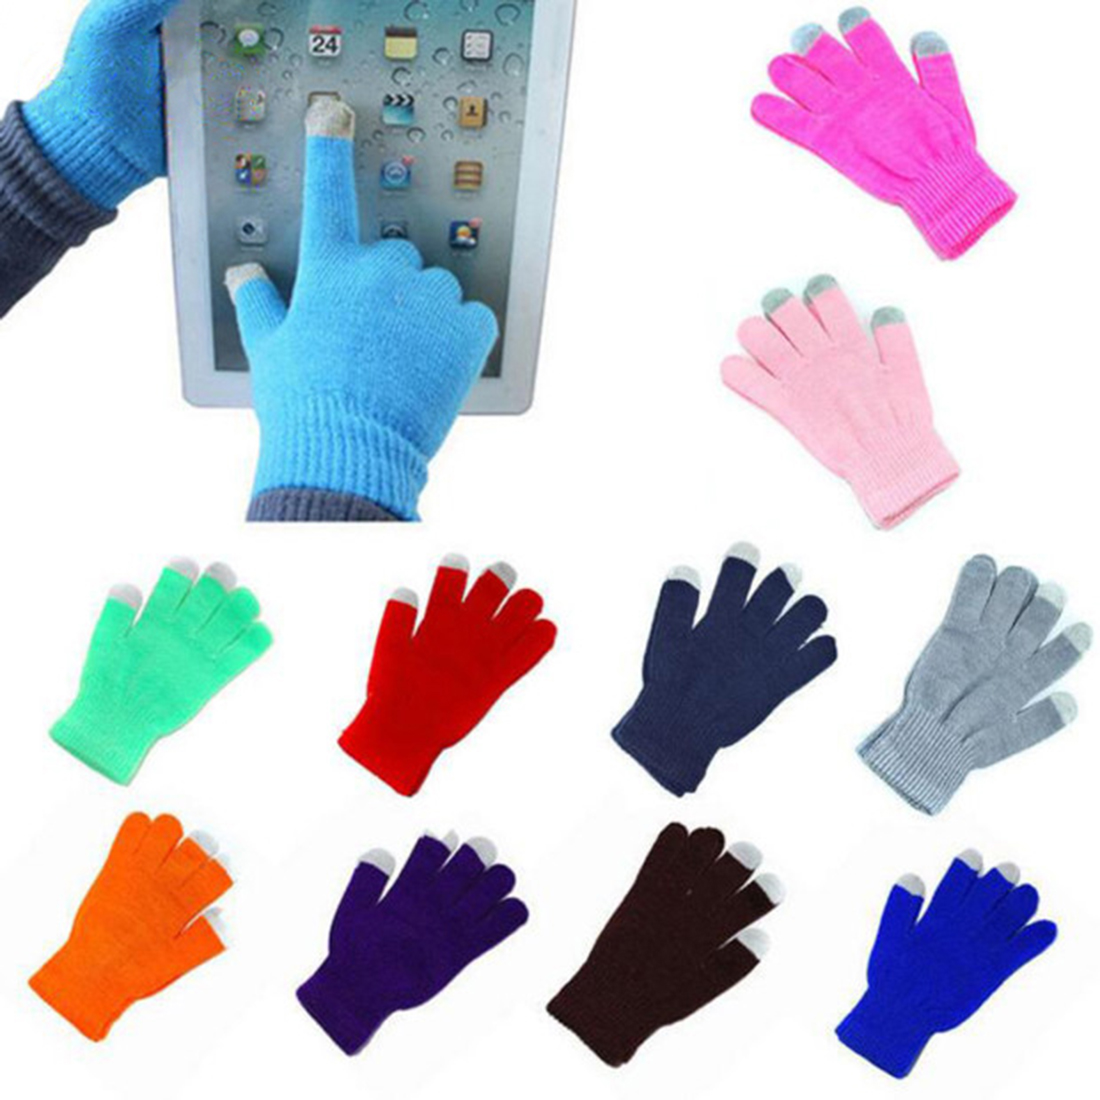 Winter Gloves Soft Men Women Touch Screen Texting Cap Active Smart Phone Knit Glove New Solid Color Outwear Warm Wrist Gloves